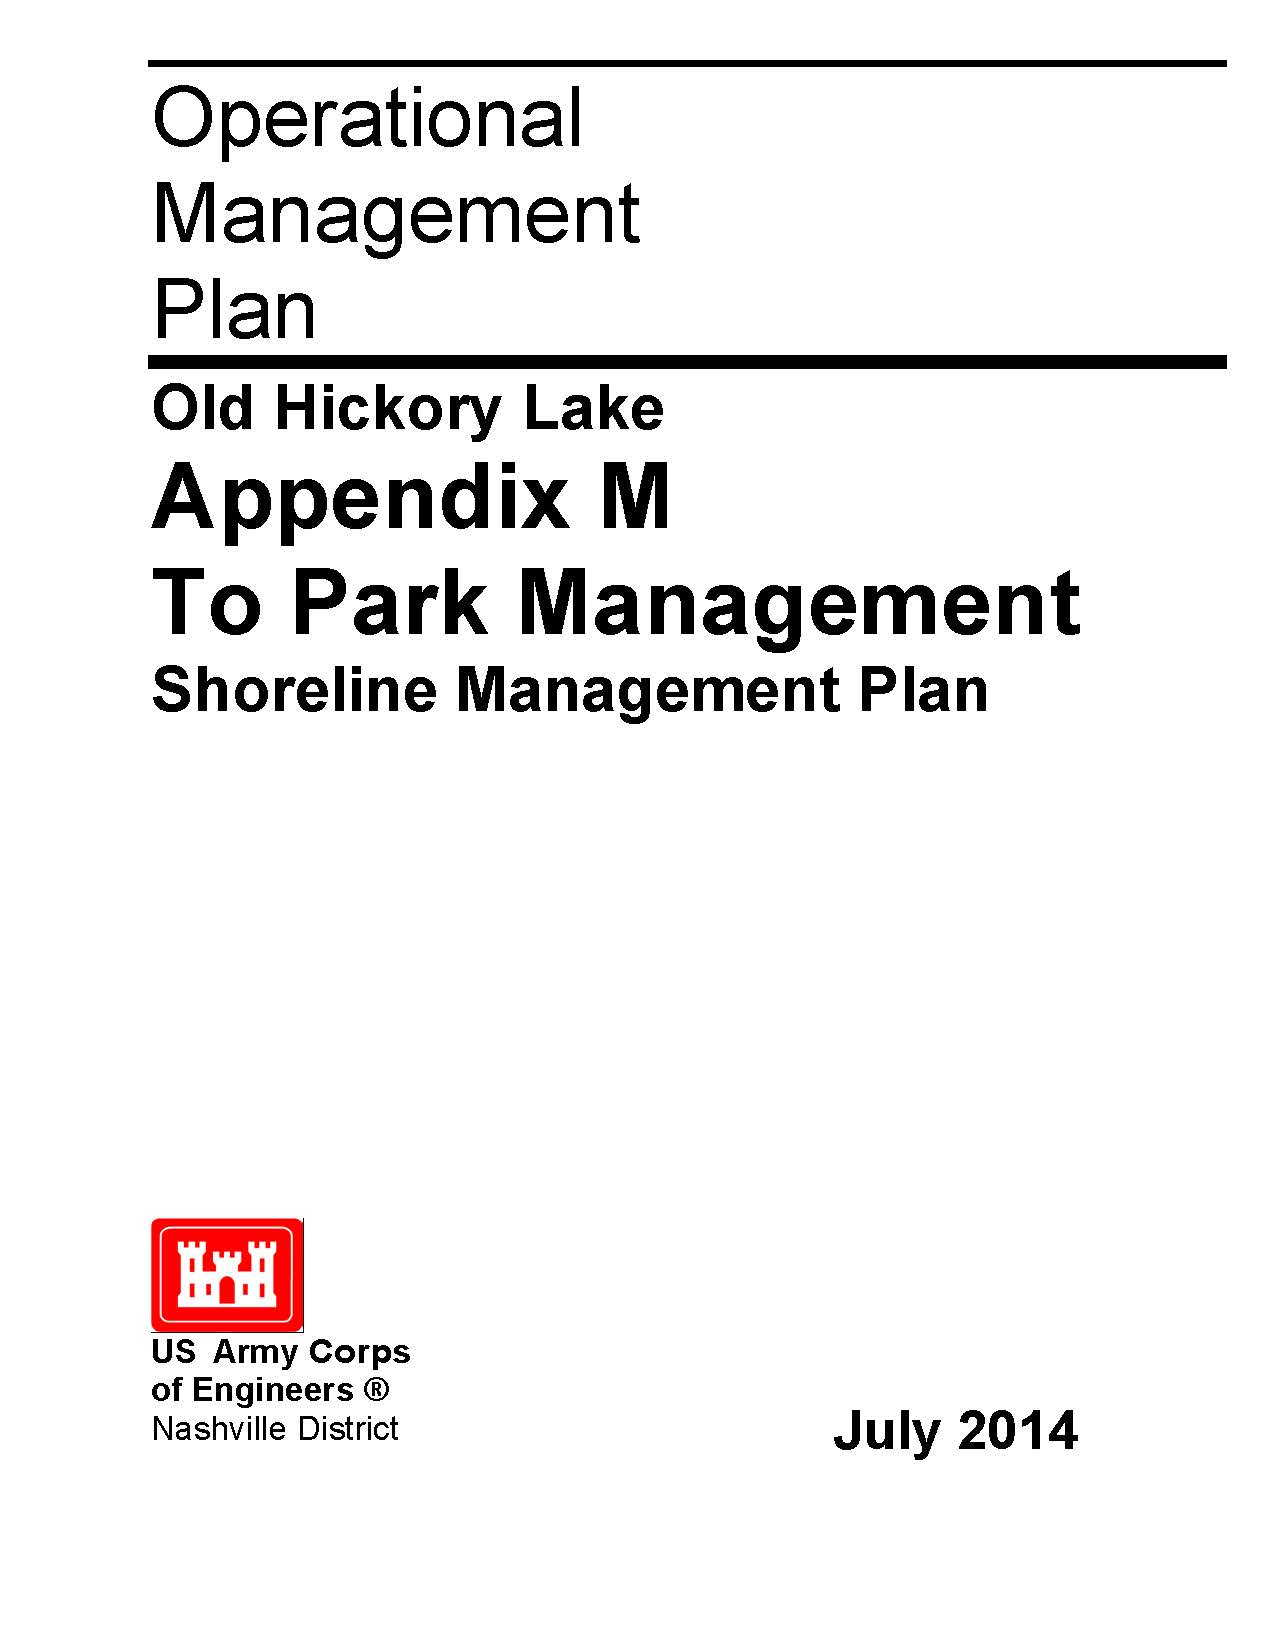 Front page of the 2014 Old Hickory Lake Shoreline Management Plan